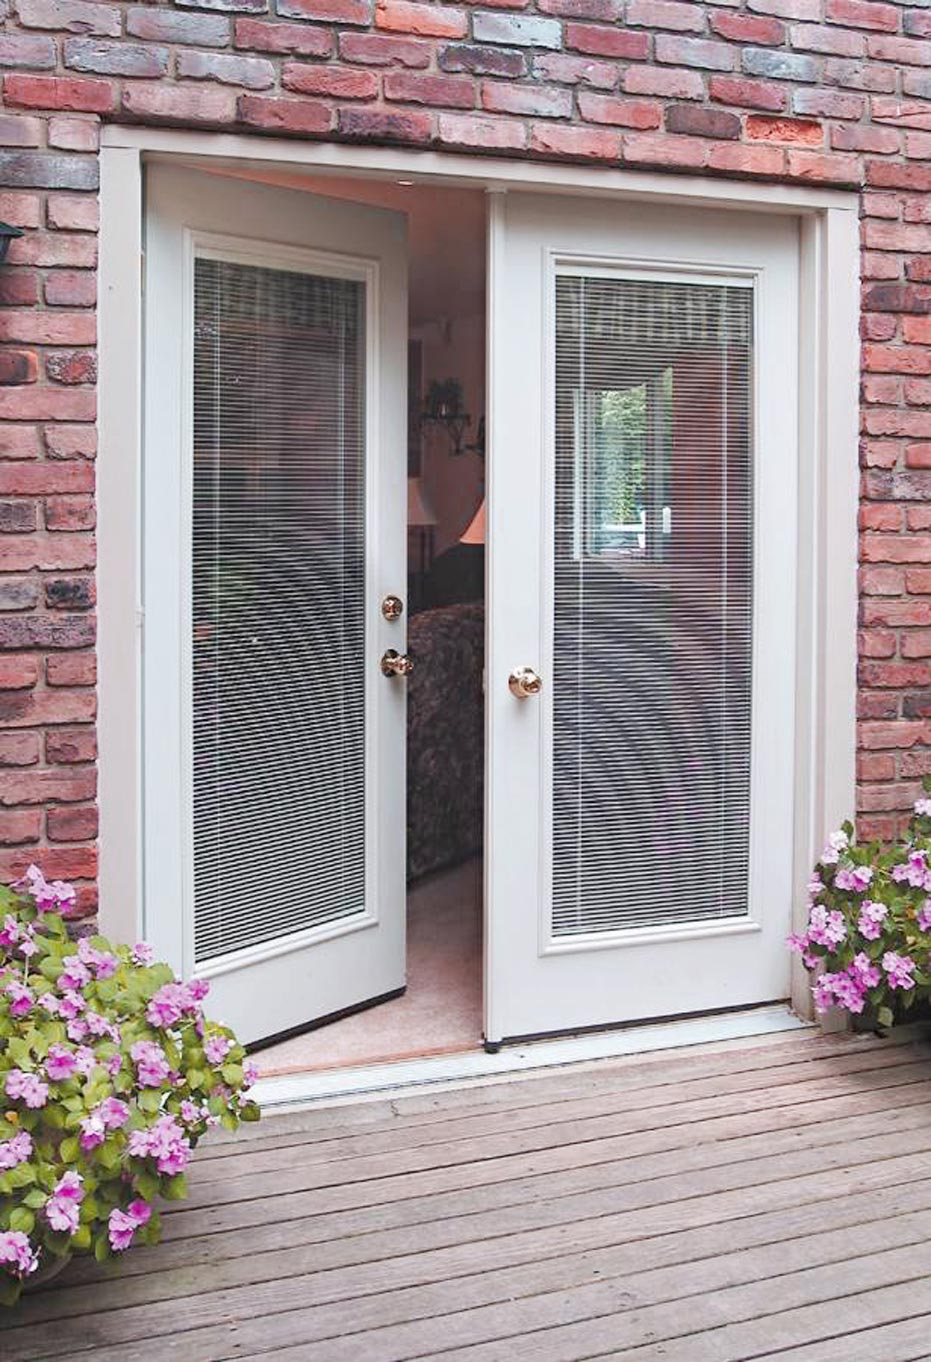 French Patio Doors With Built In Blinds 7 Spotlats